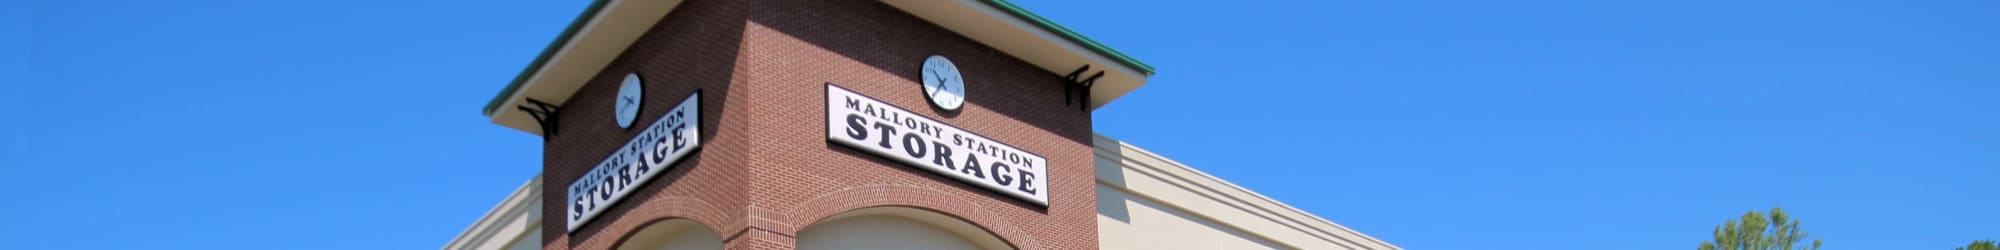 Mallory Station Storage's privacy policy